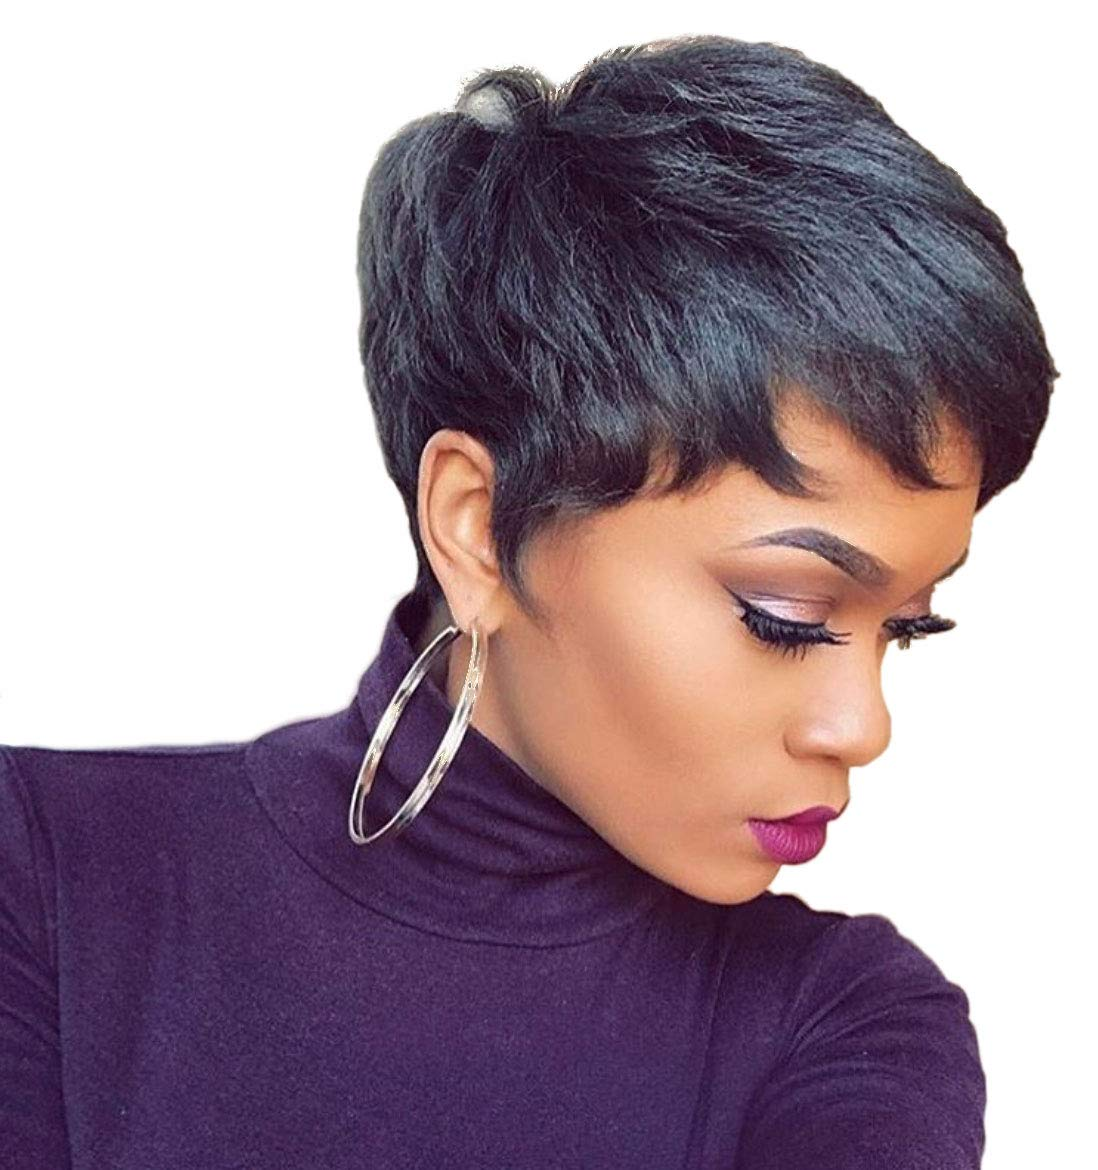 Naseily Short Hair Wigs For Black Women Curly Synthetic Wig African  American Women Wigs